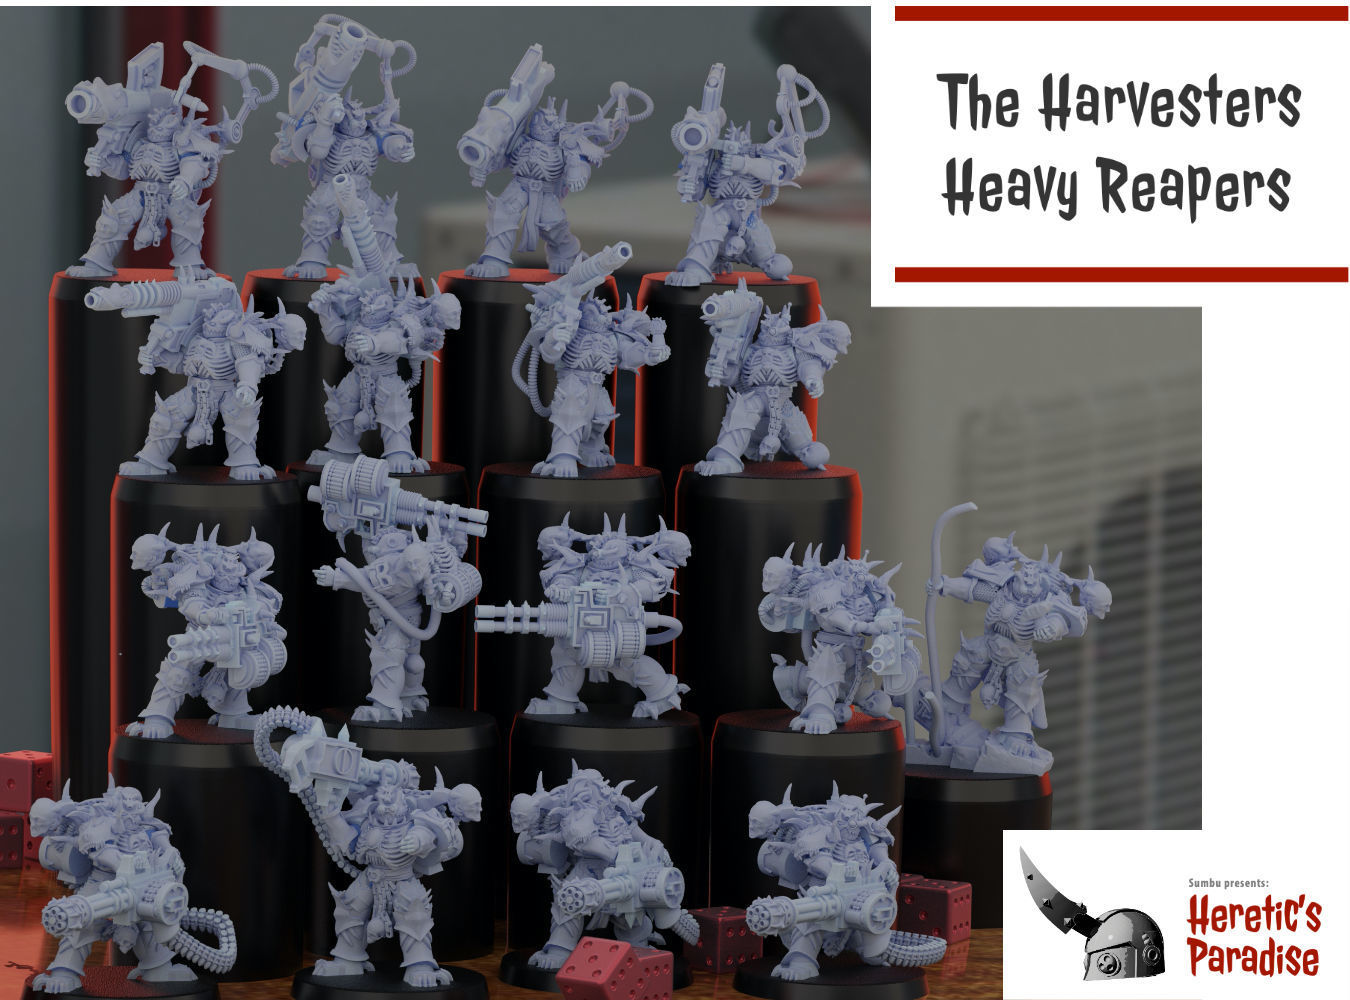 The Harvesters - Heavy Reapers